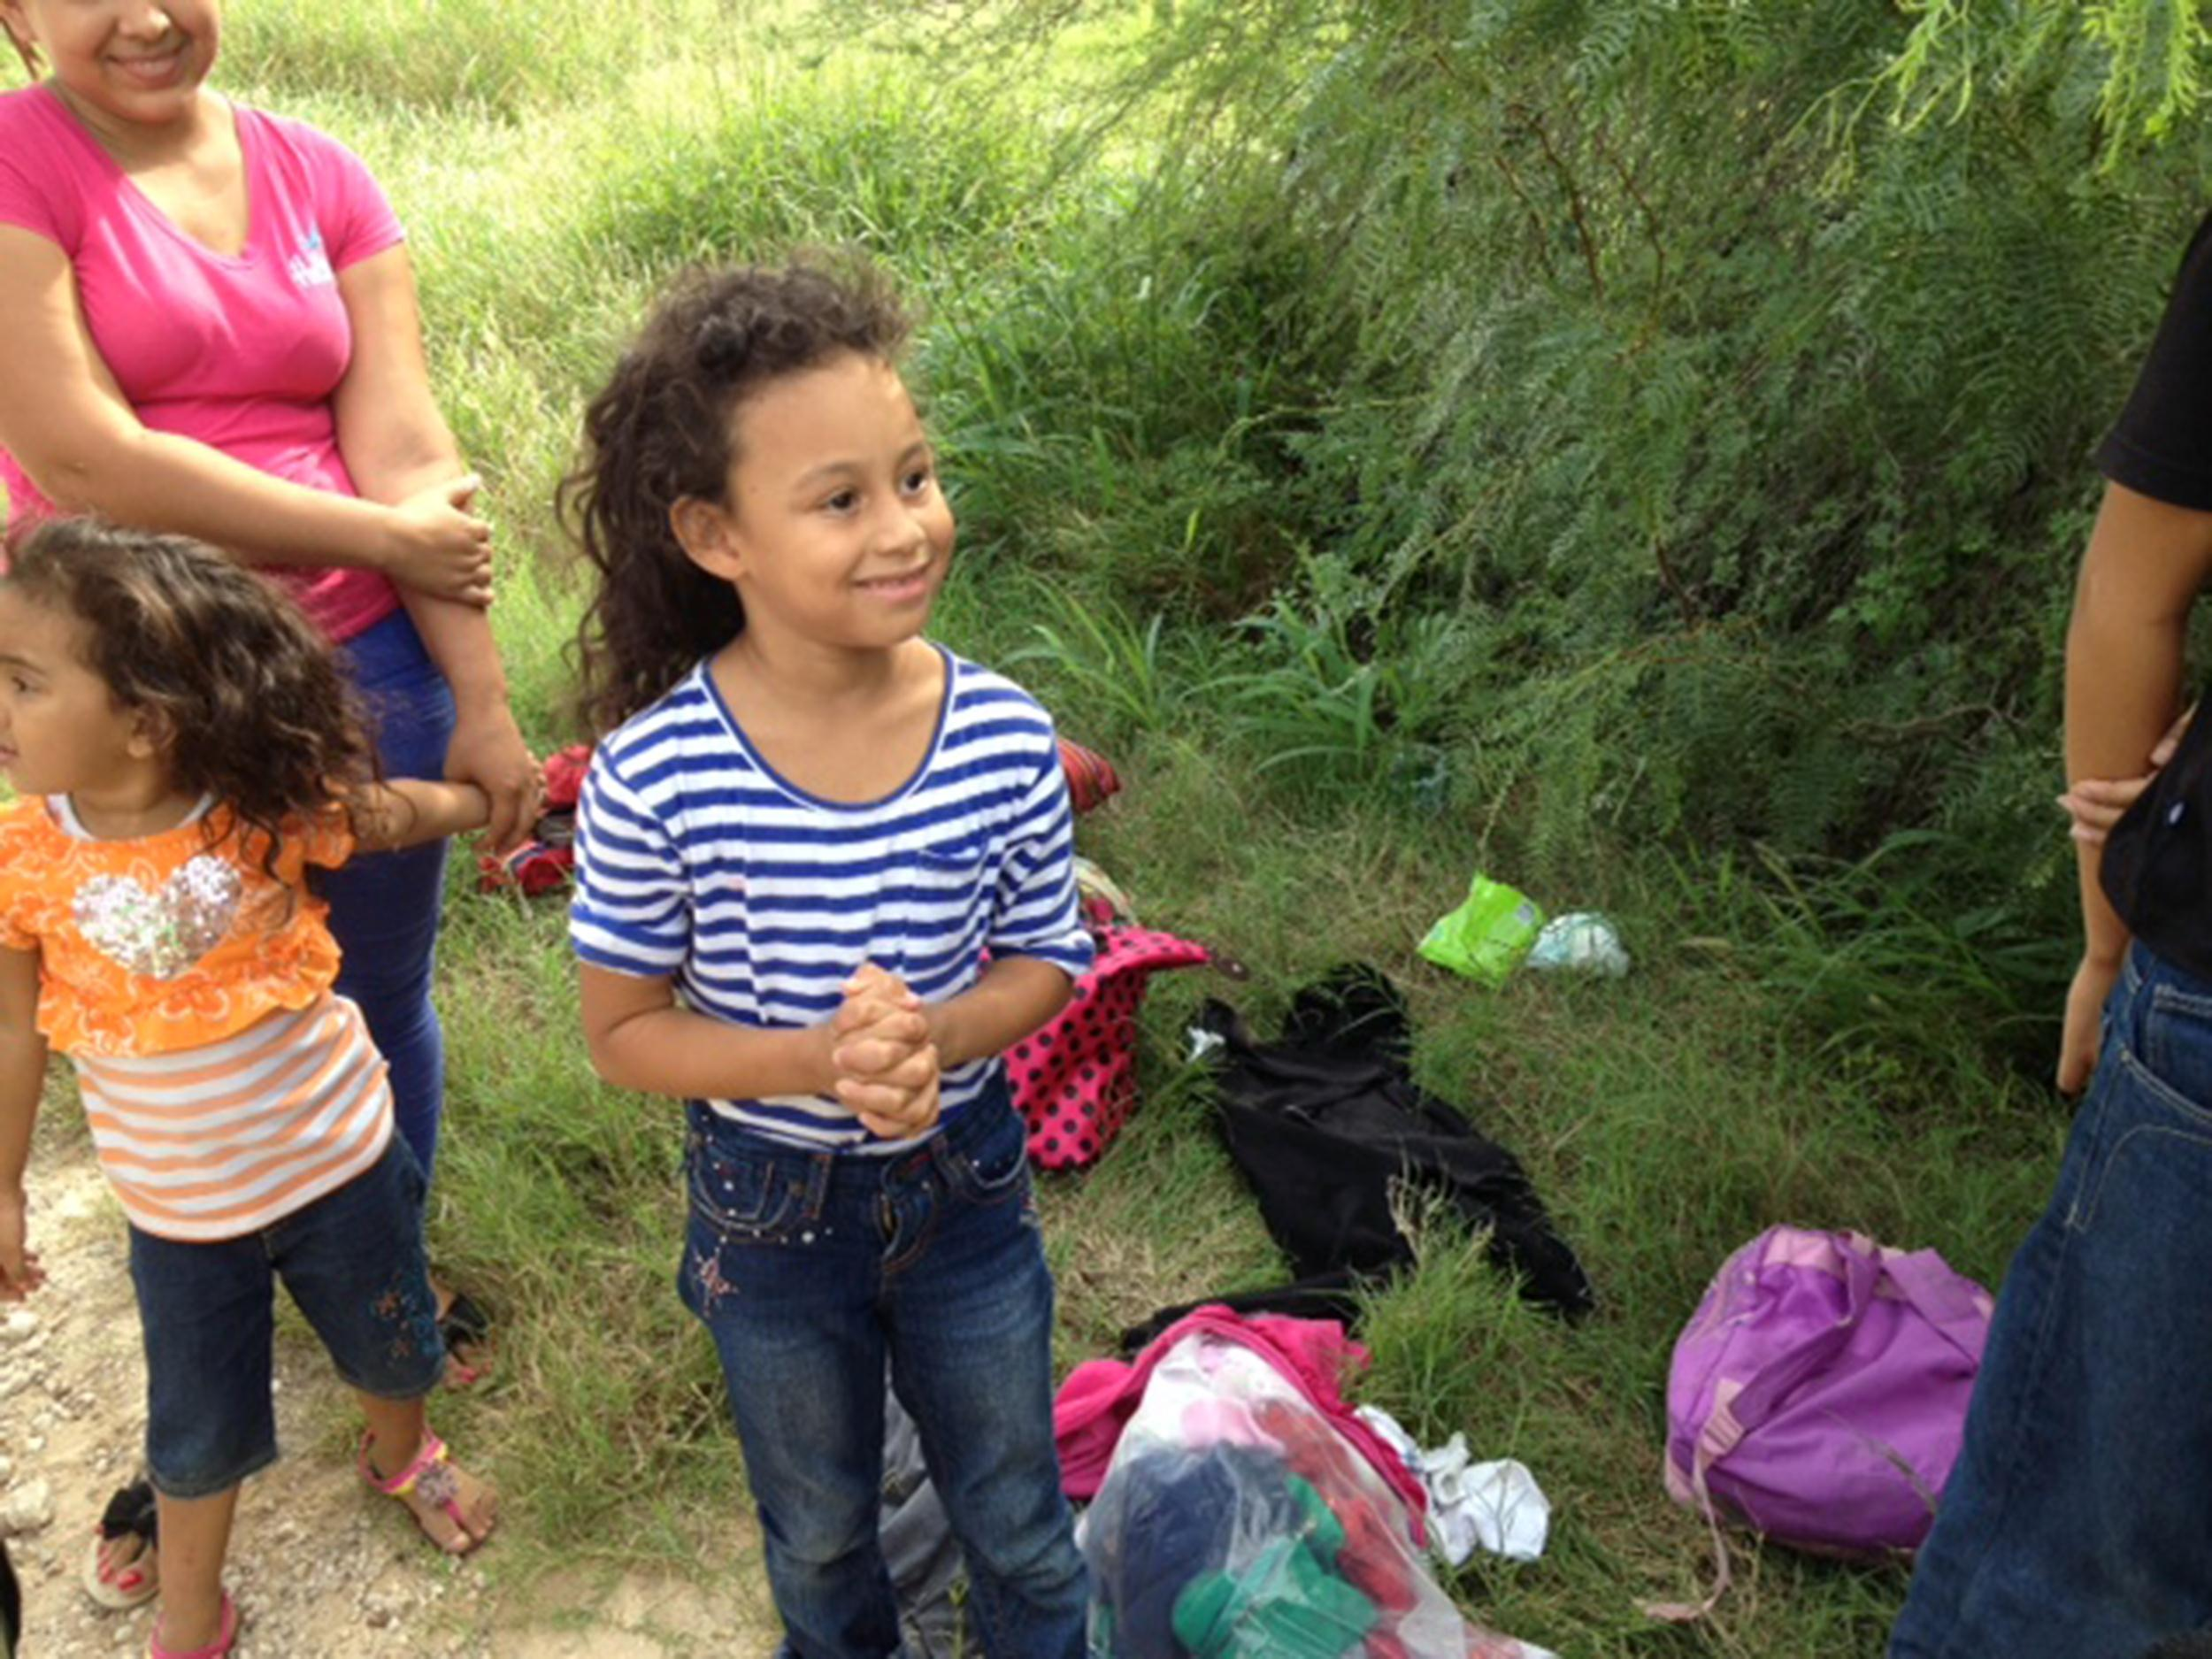 Image: Aimee was apprehended by Border Patrol on July 11, near Mission, Texas.